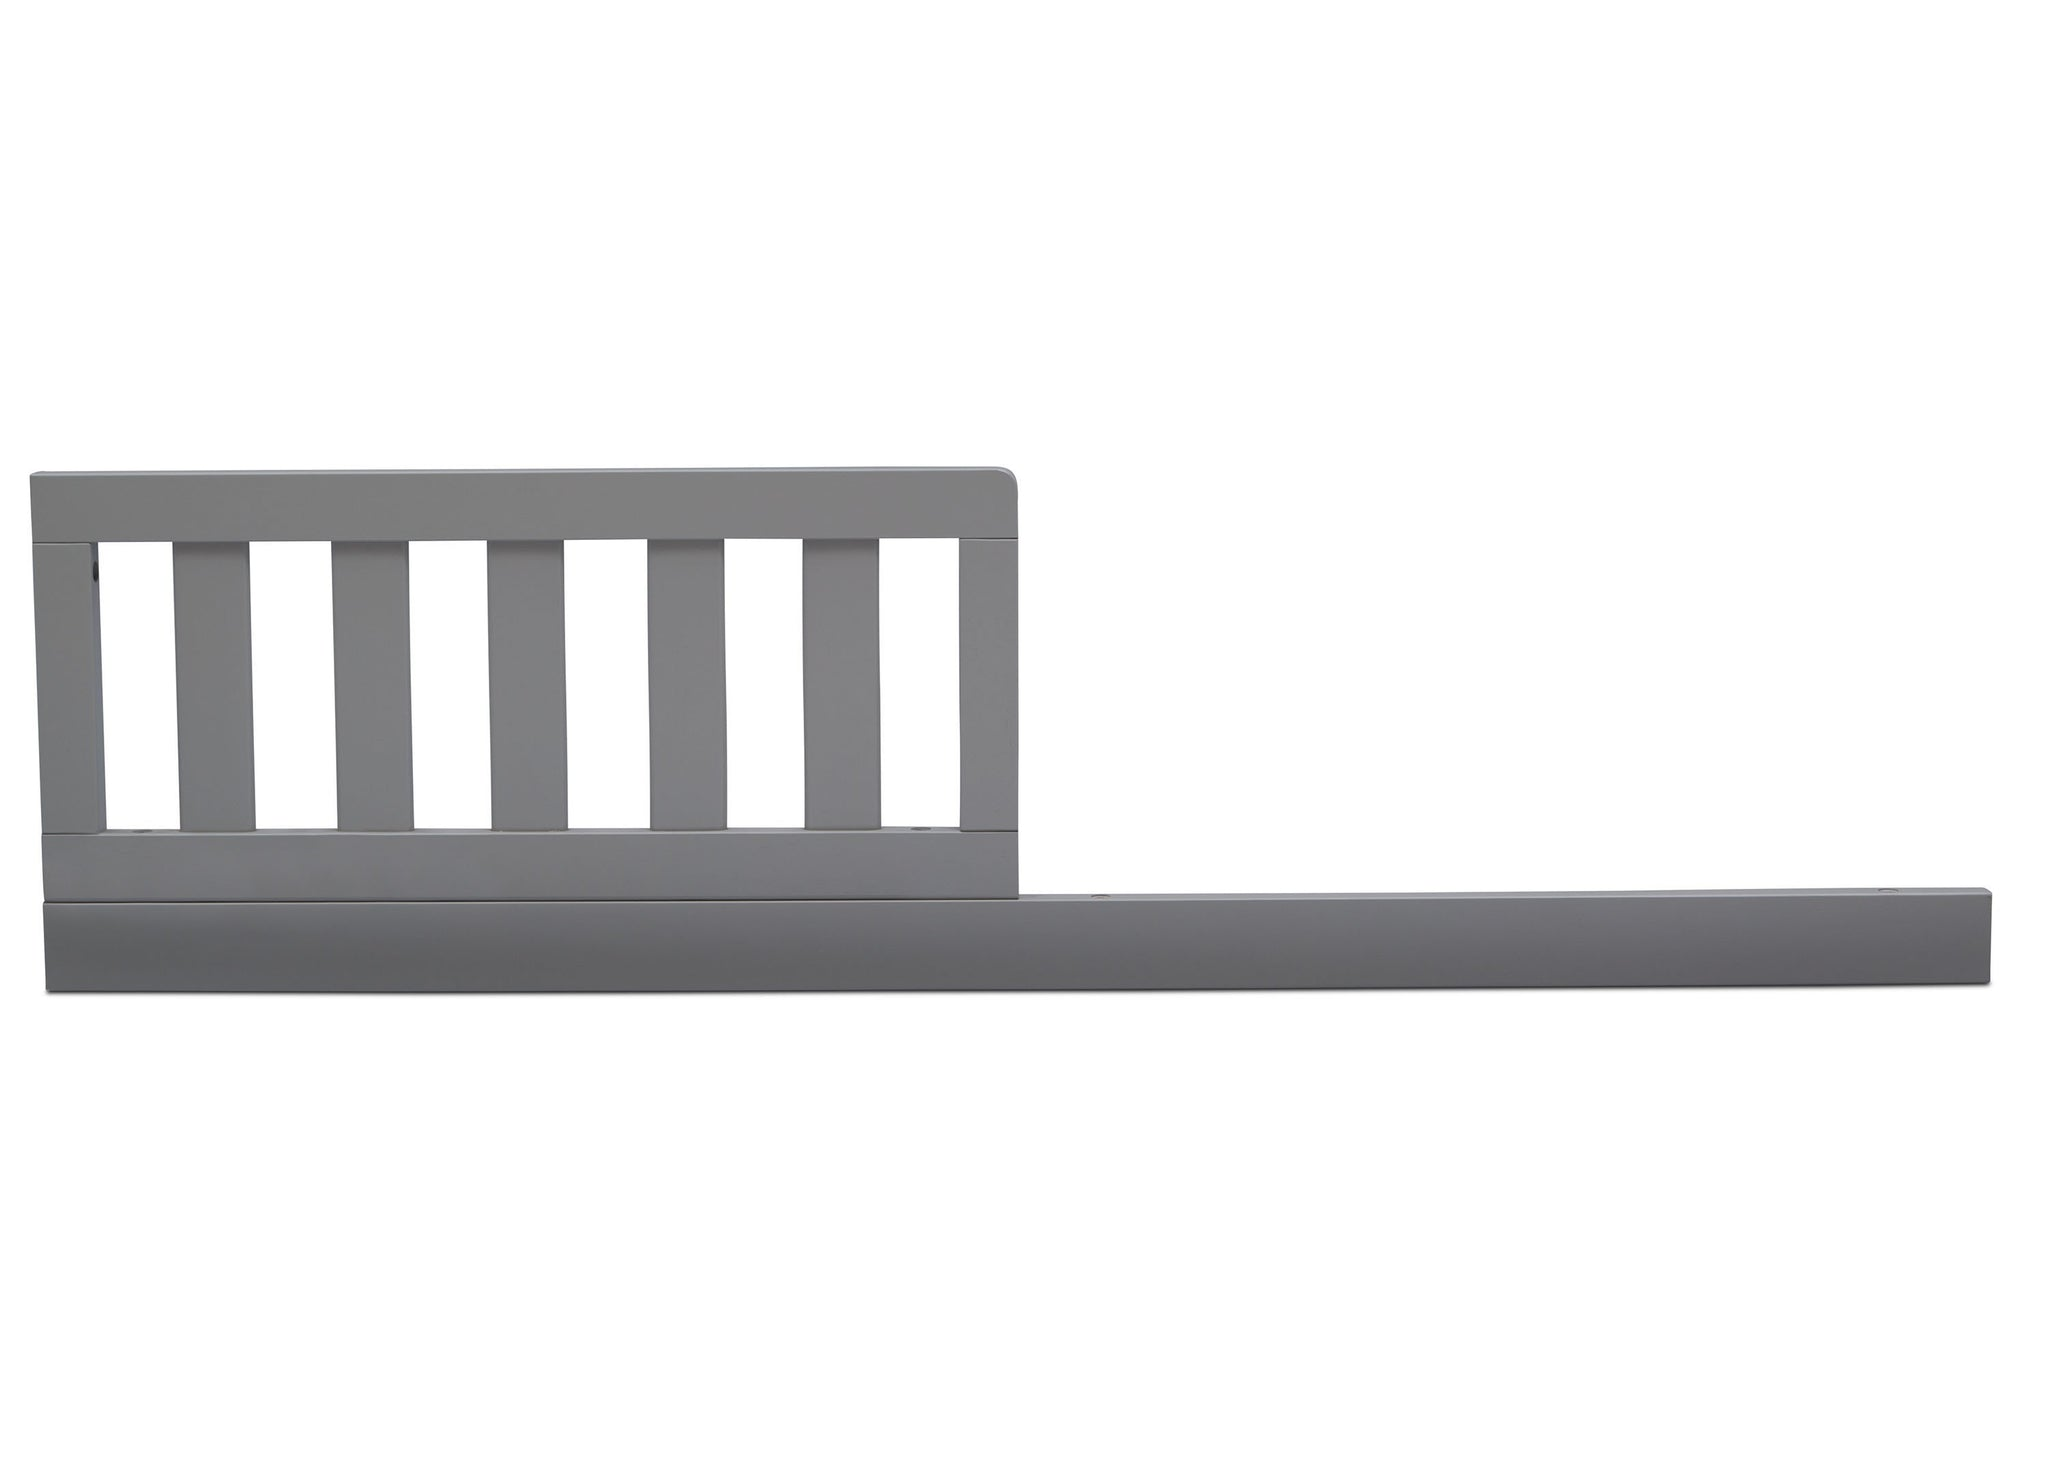 Serta Daybed/Toddler Guardrail Kit (707726) Grey (026) Front a1a